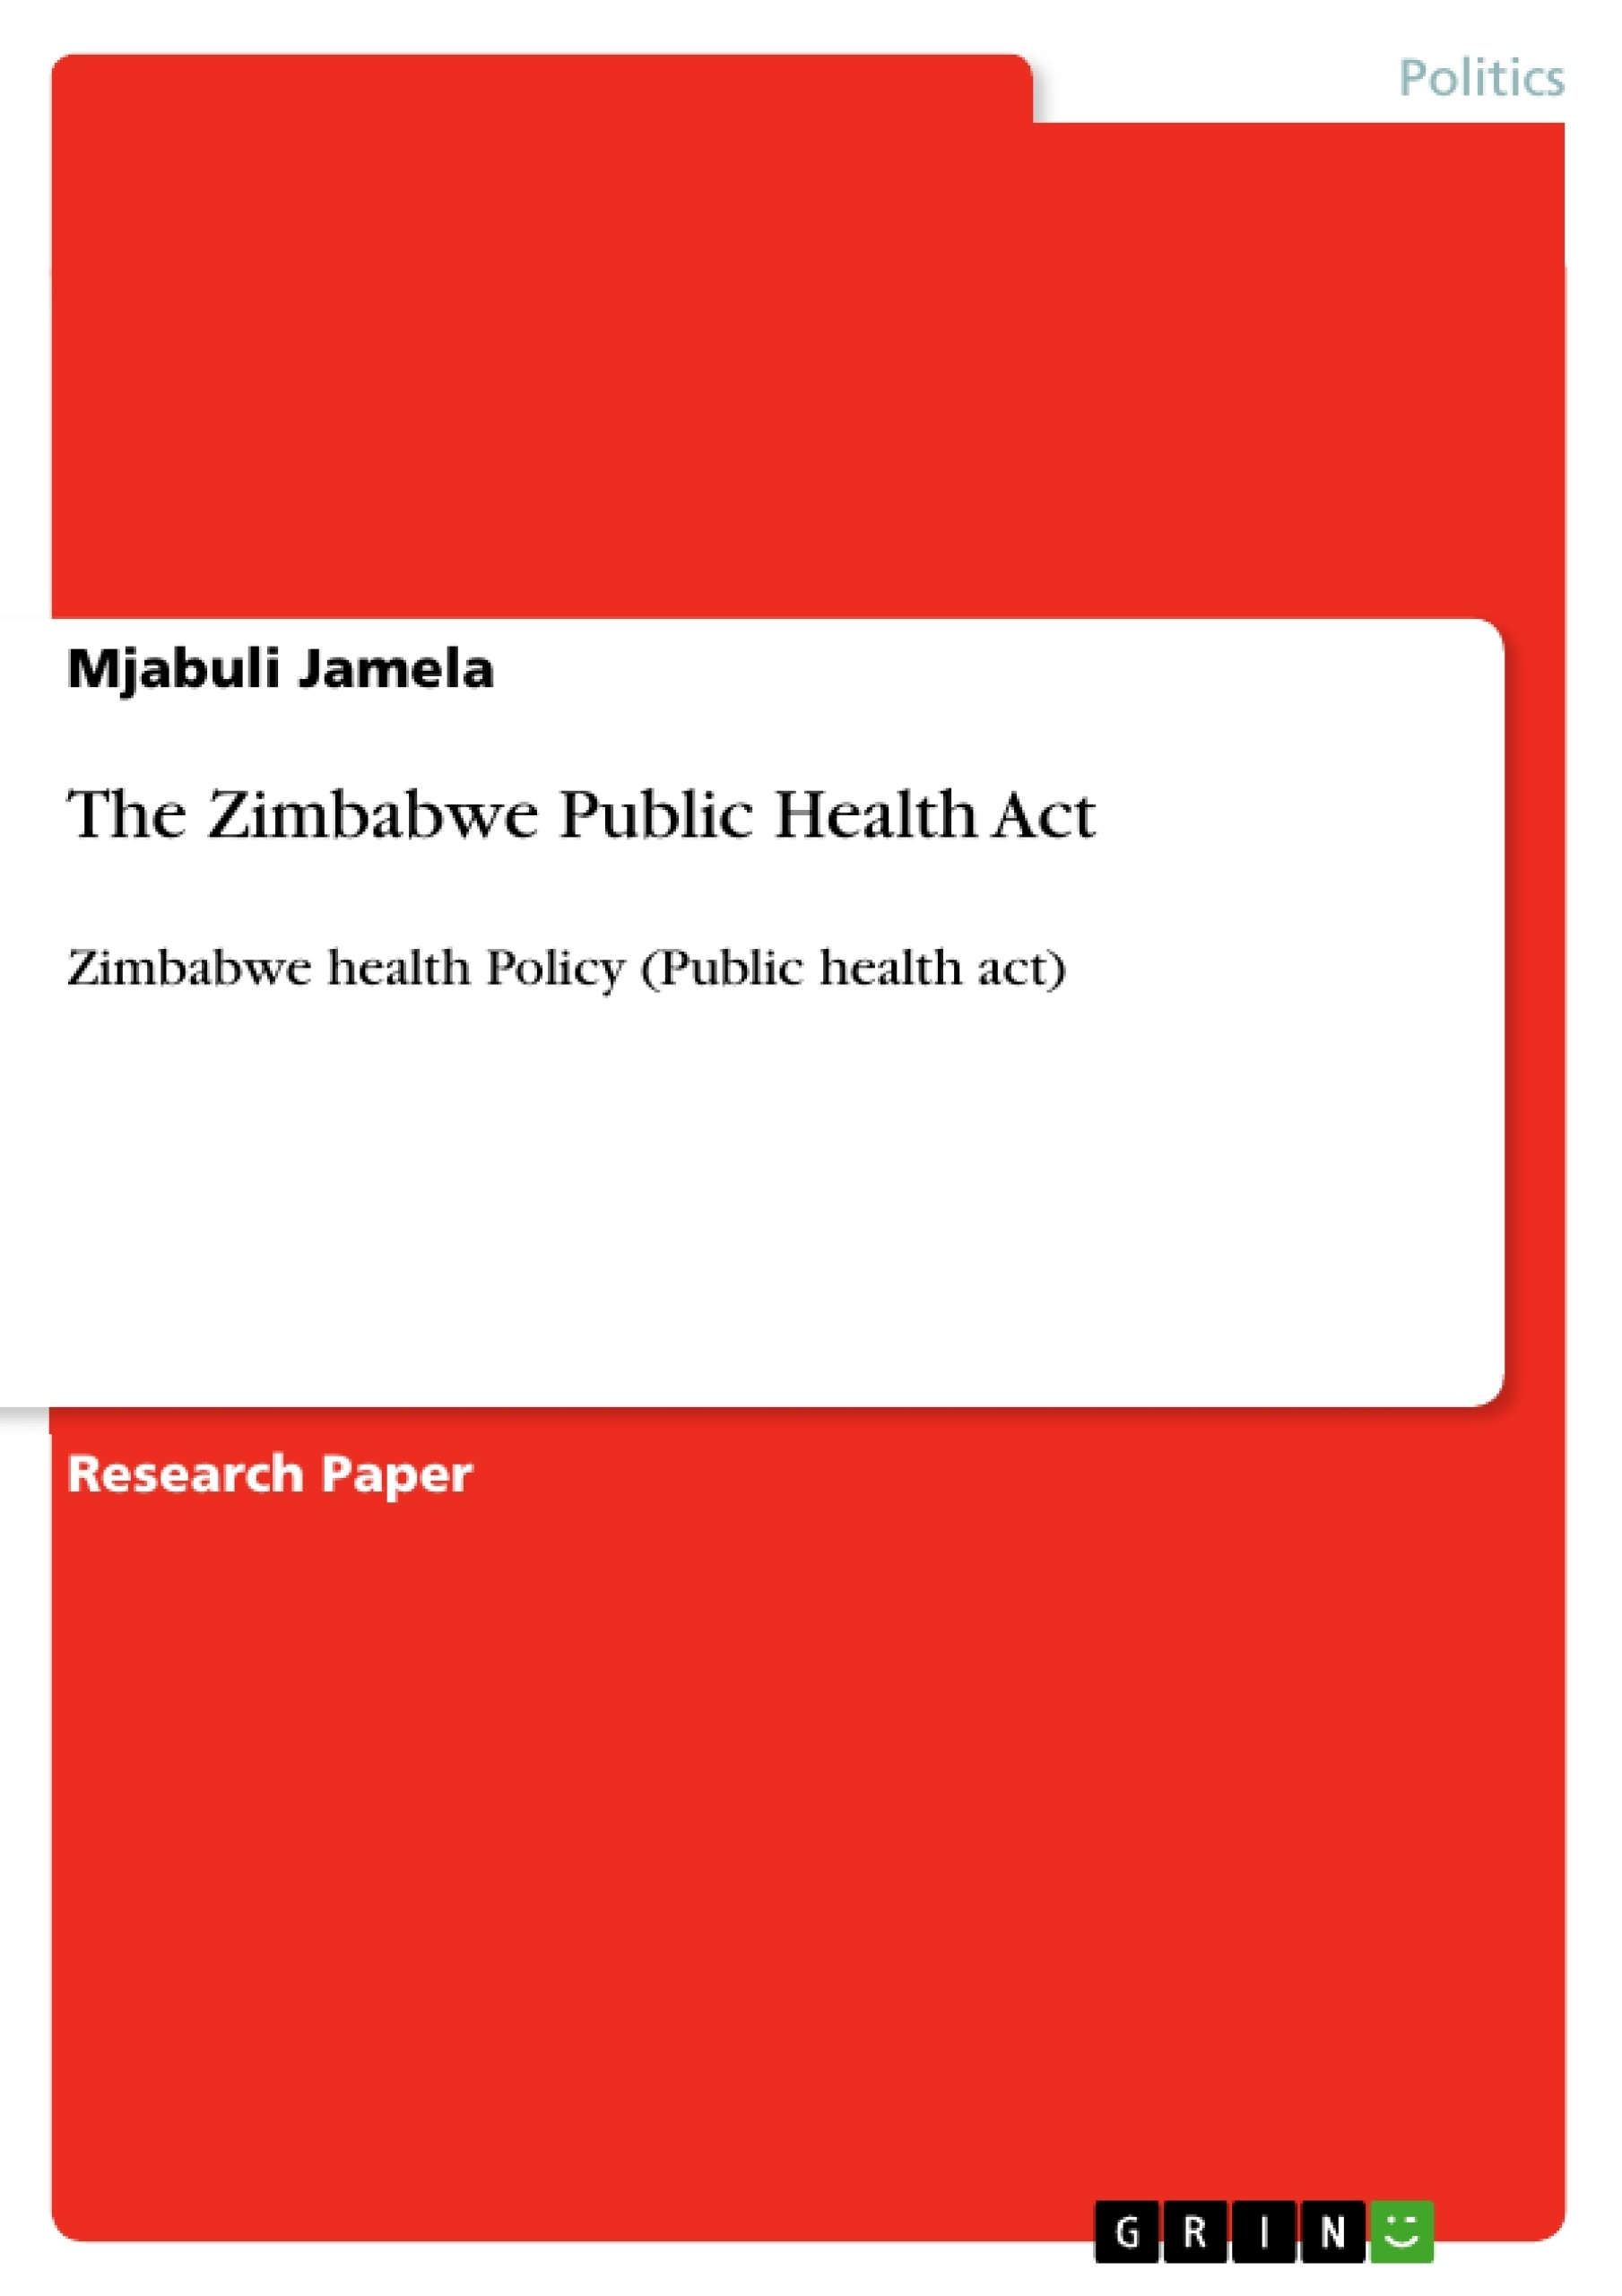 public health policy paper Managed care & health insurance johns hopkins bloomberg school of public health assignment #1 discussion paper the purpose of this paper is to.